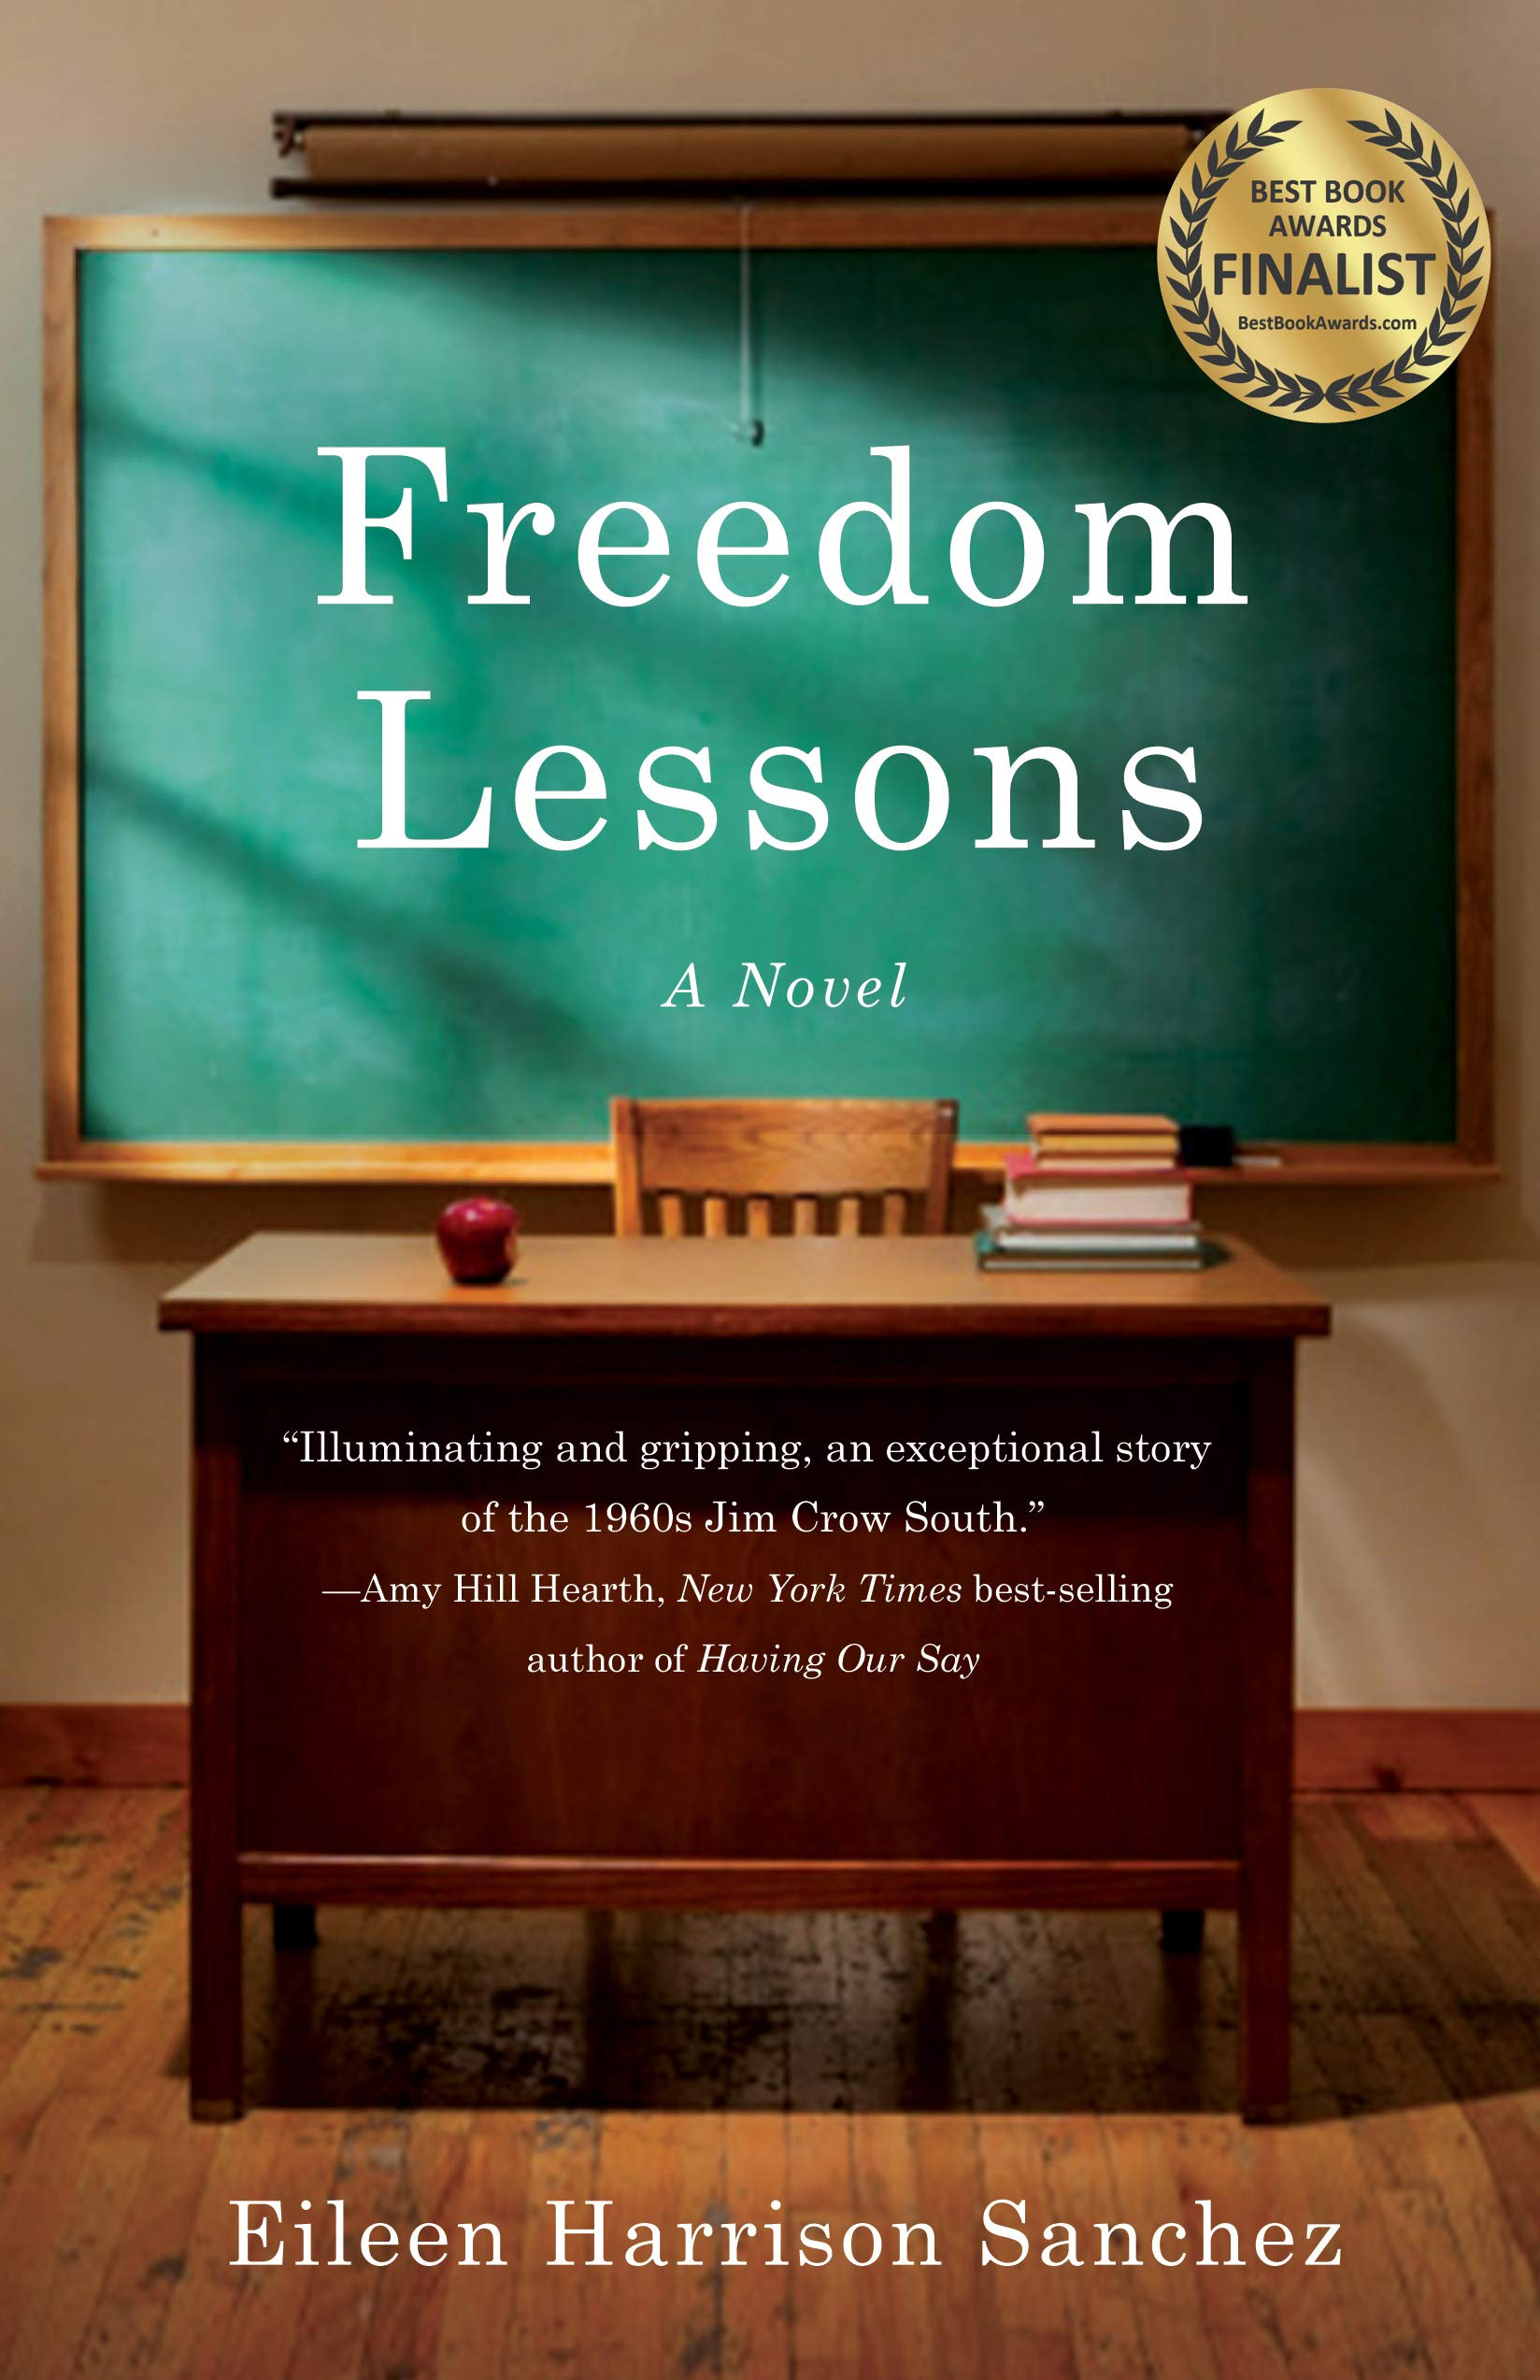 Amazon.com: Freedom Lessons: A Novel (9781631526107): Harrison Sanchez, Eileen: Books